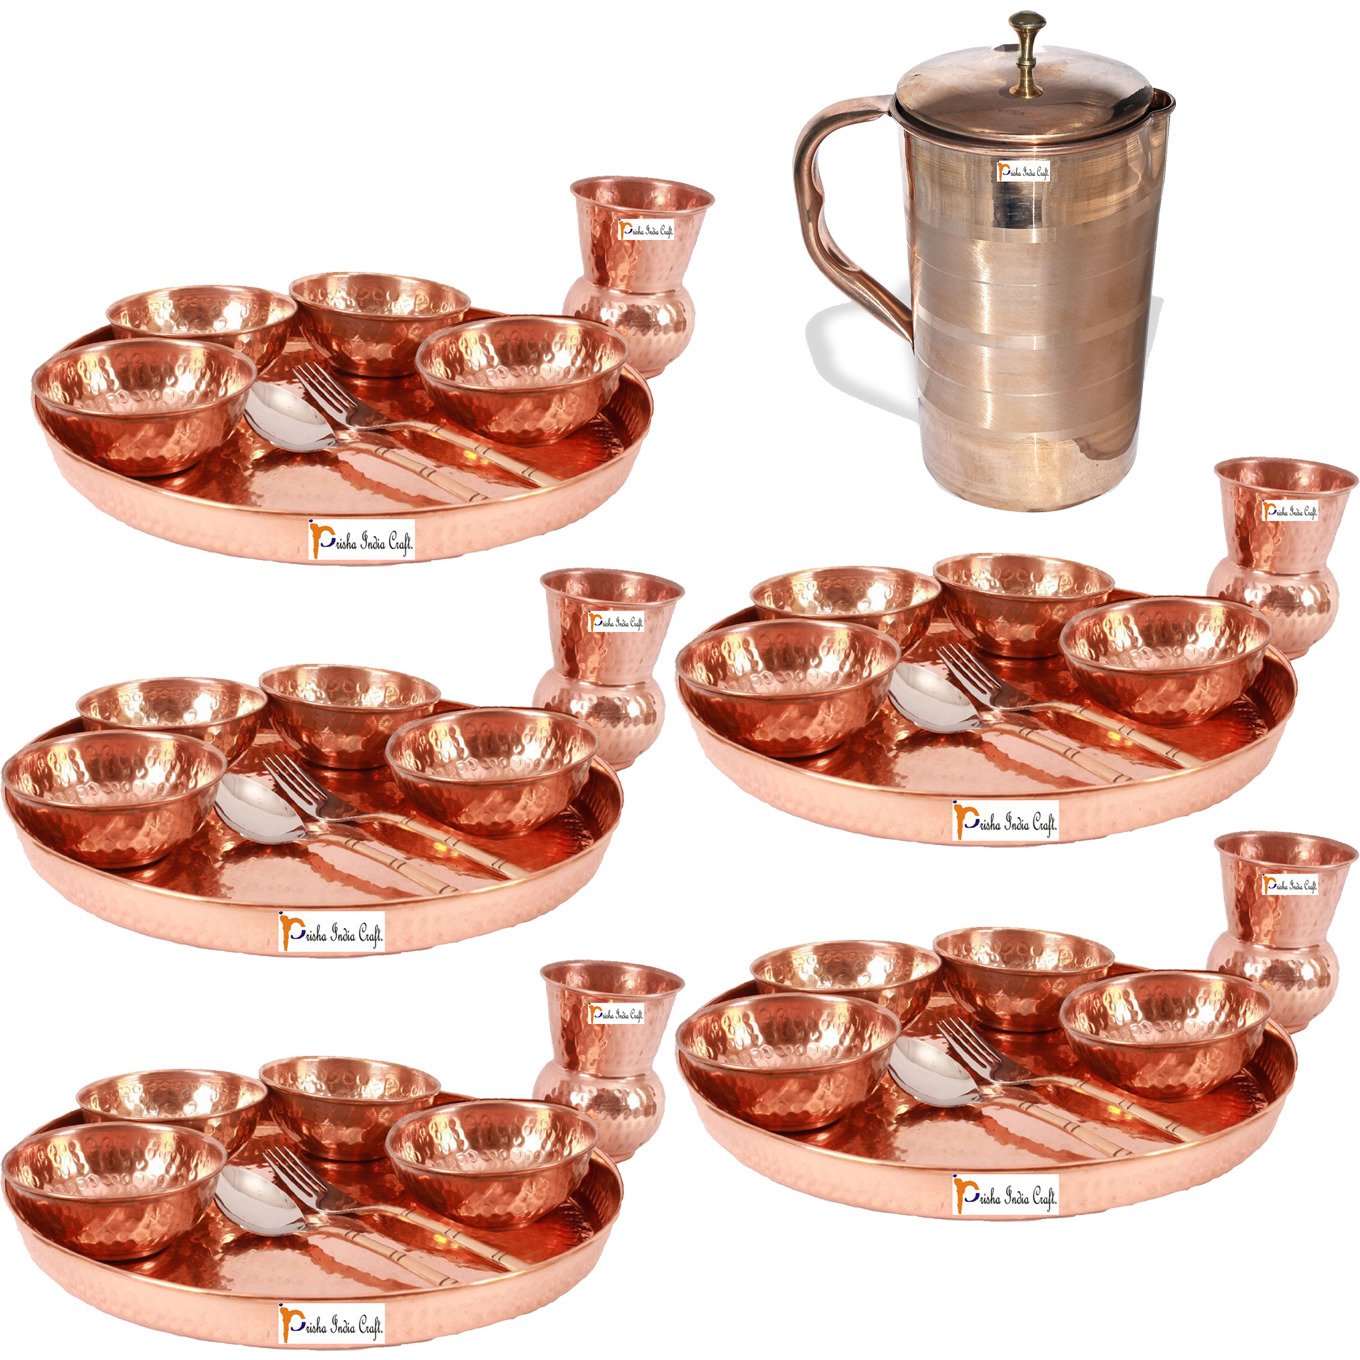 Prisha India Craft B. Set of 5 Dinnerware Traditional 100% Pure Copper Dinner Set of Thali Plate, Bowls, Glass and Spoon, Dia 12  With 1 Luxury Style Pure Copper Pitcher Jug - Christmas Gift